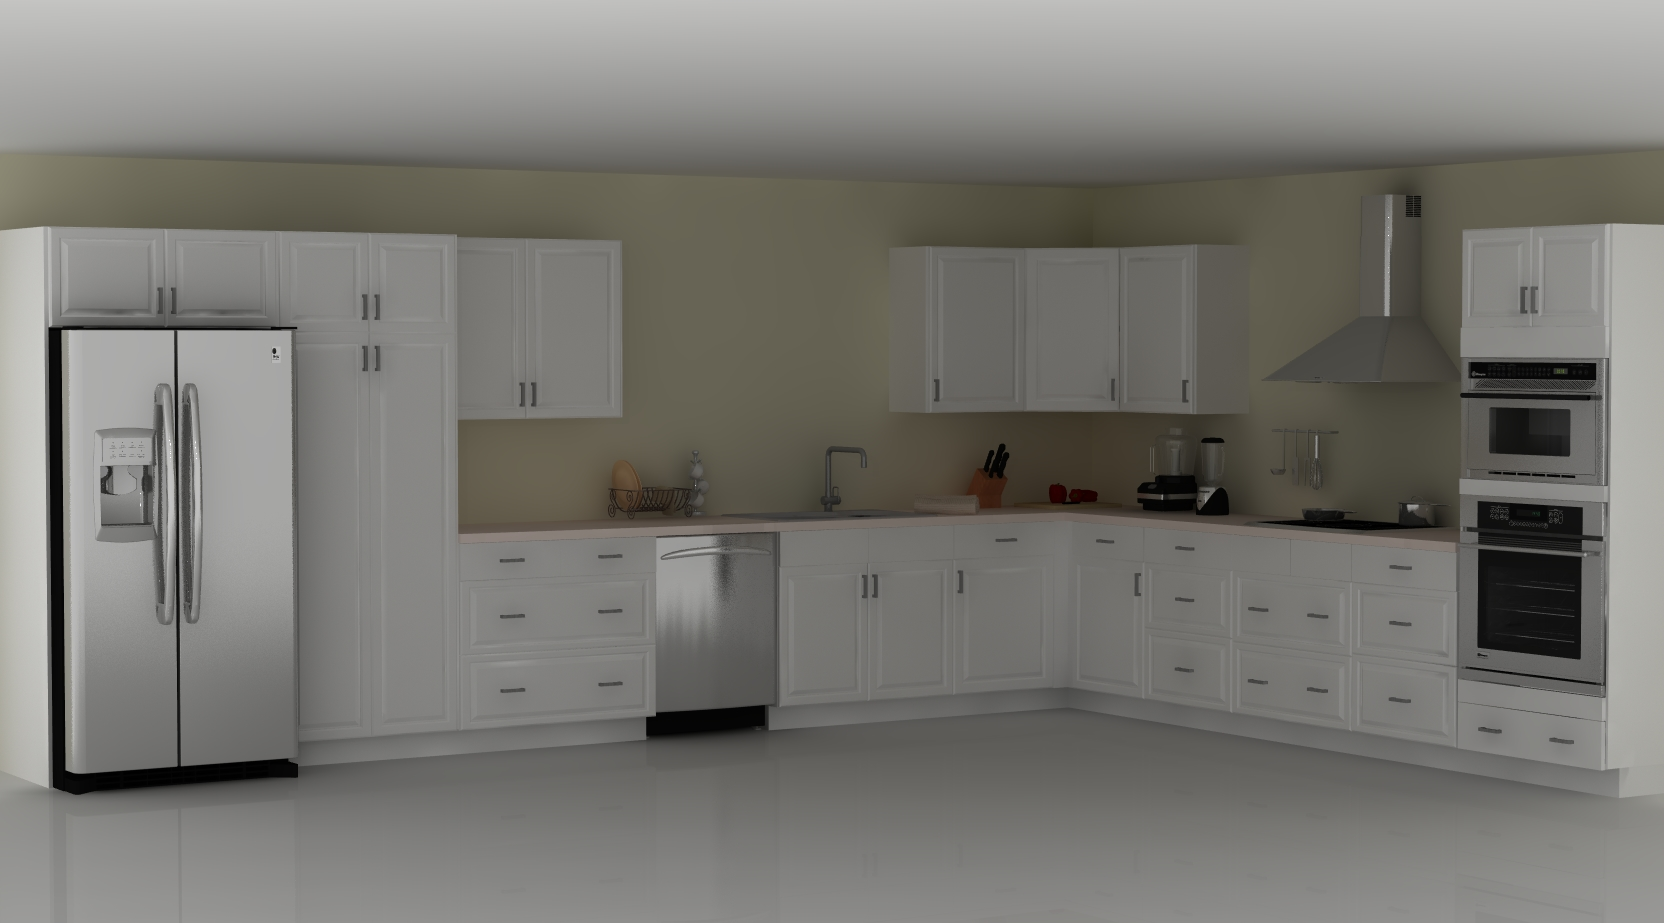 L Shaped Kitchen Layouts ikea kitchen designer tips: pros and cons of an l-shaped layout